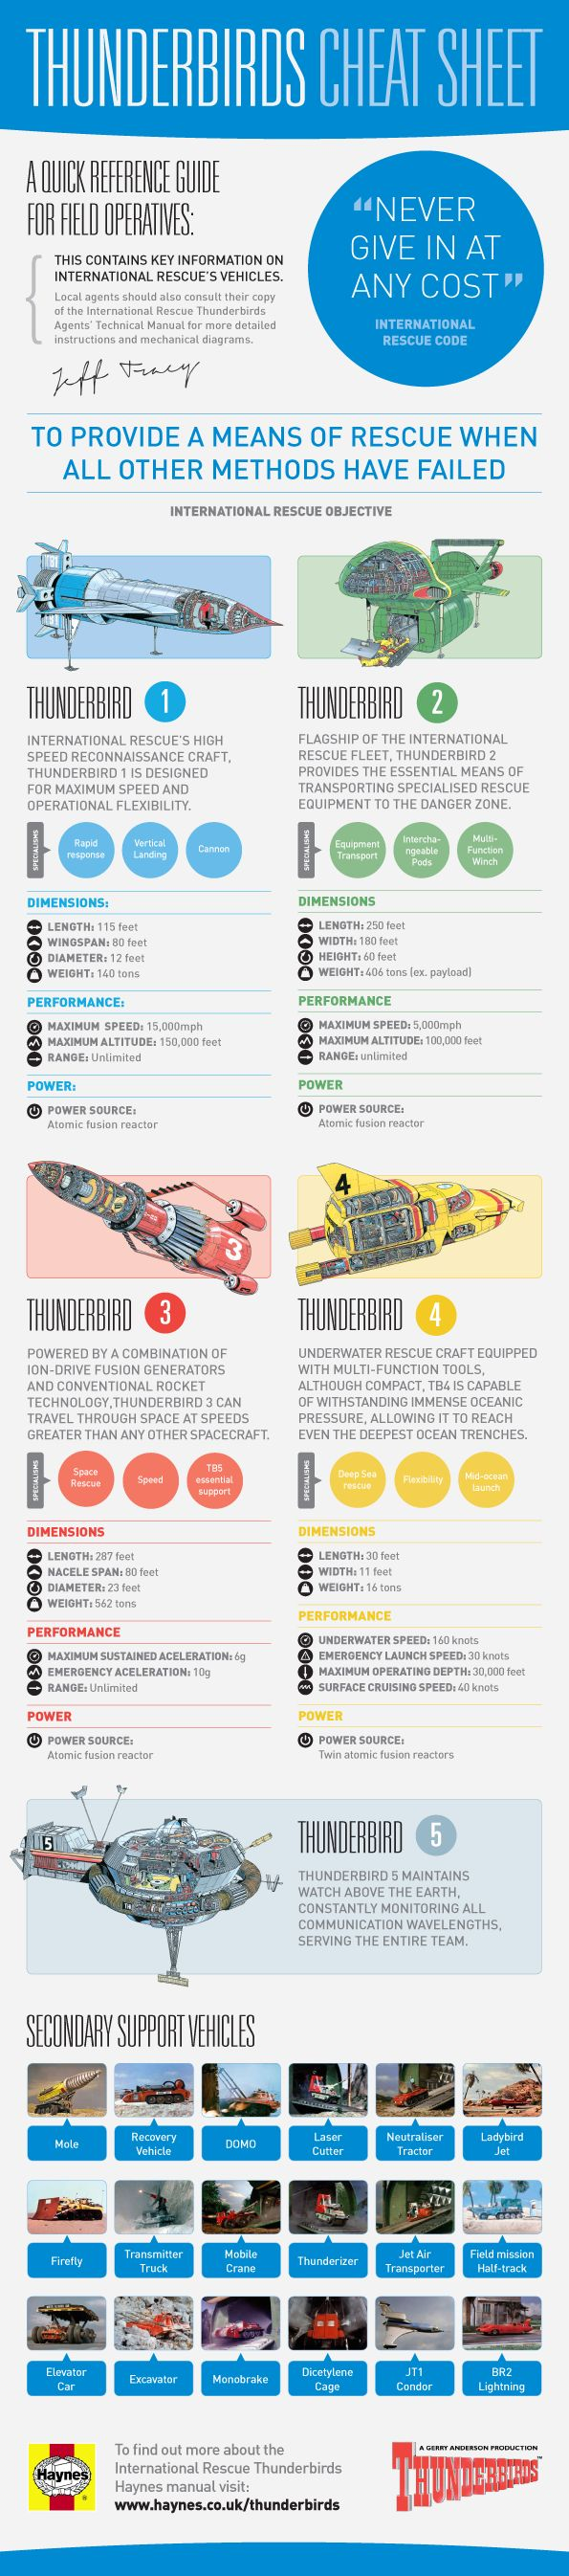 Infographic: Thunderbirds Cheat Sheet